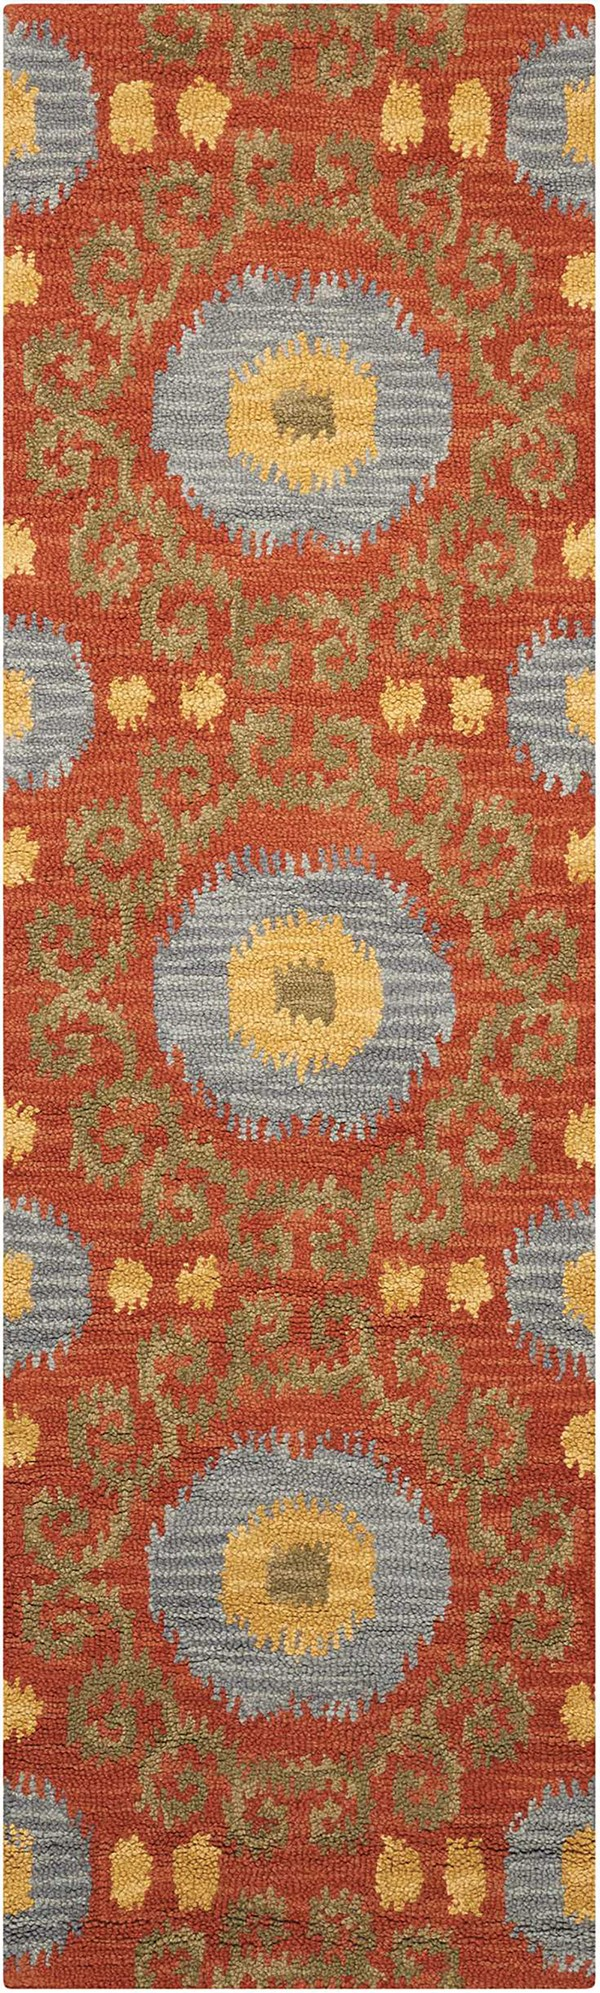 Rust Moroccan Area Rug